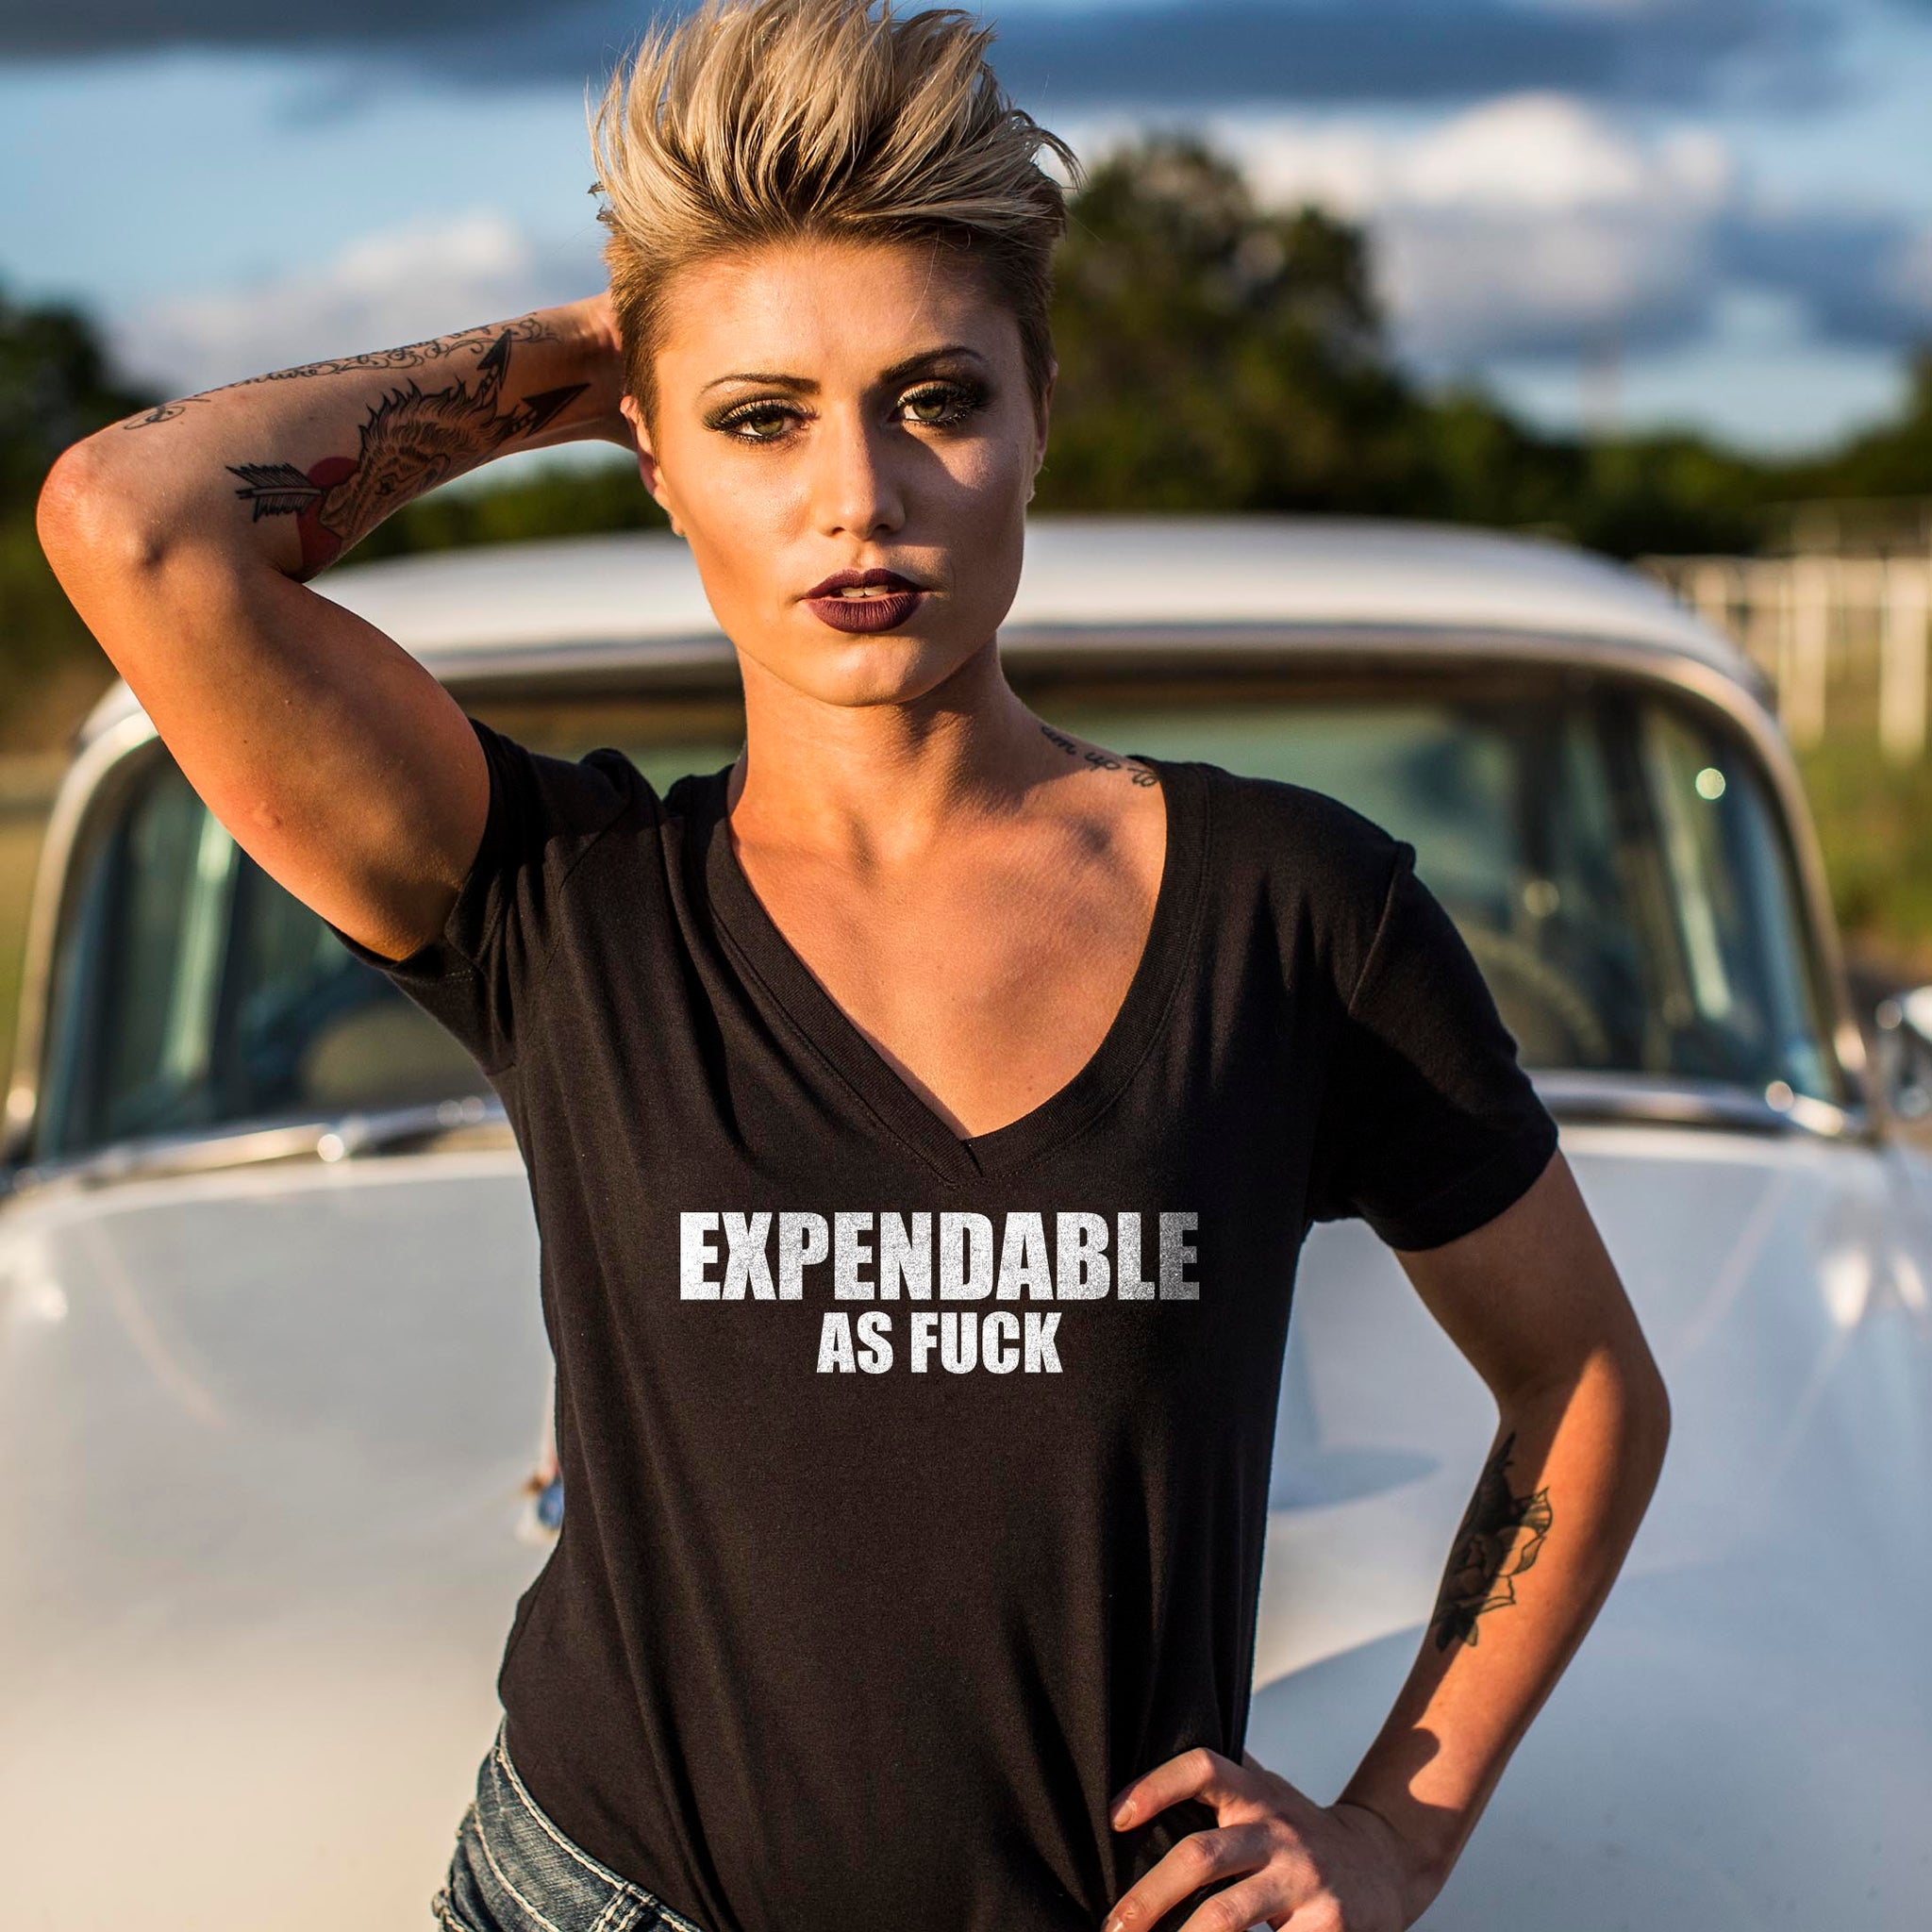 Expendable As Fuck - V-Neck - Black - T-Shirts - Pipe Hitters Union